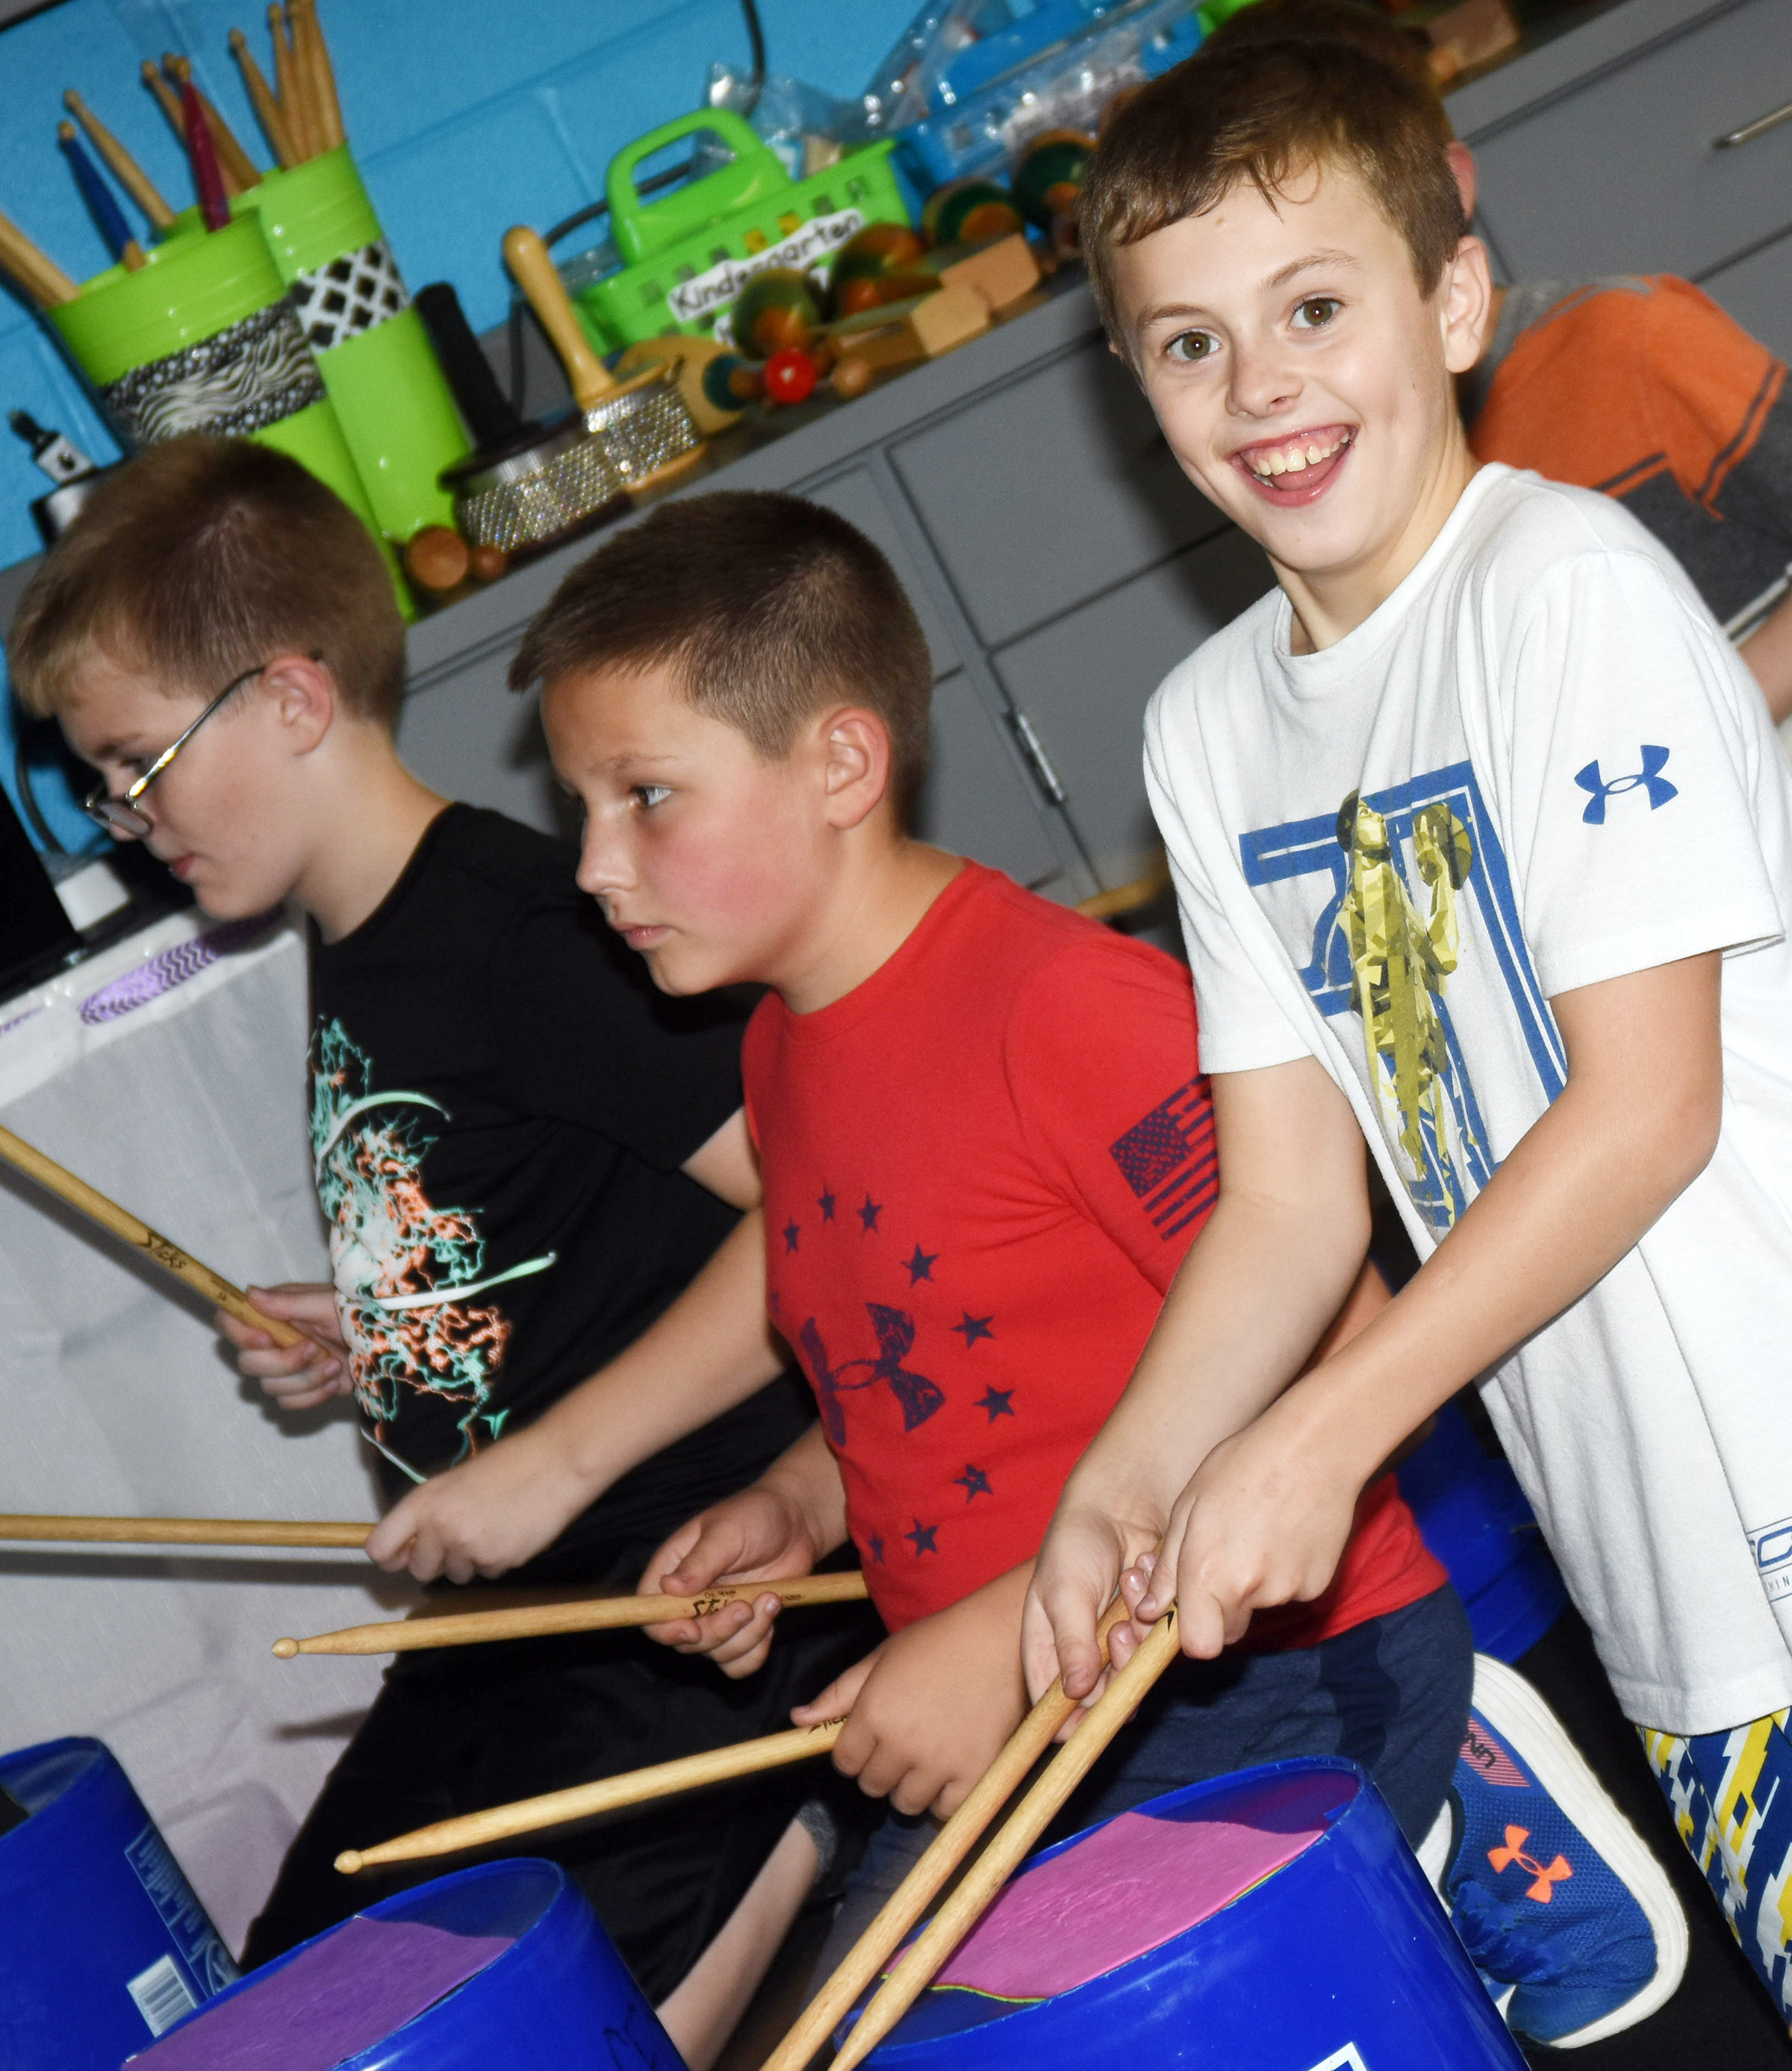 CES fifth-grader Keaton Hord smiles as he plays the drums with his classmates.